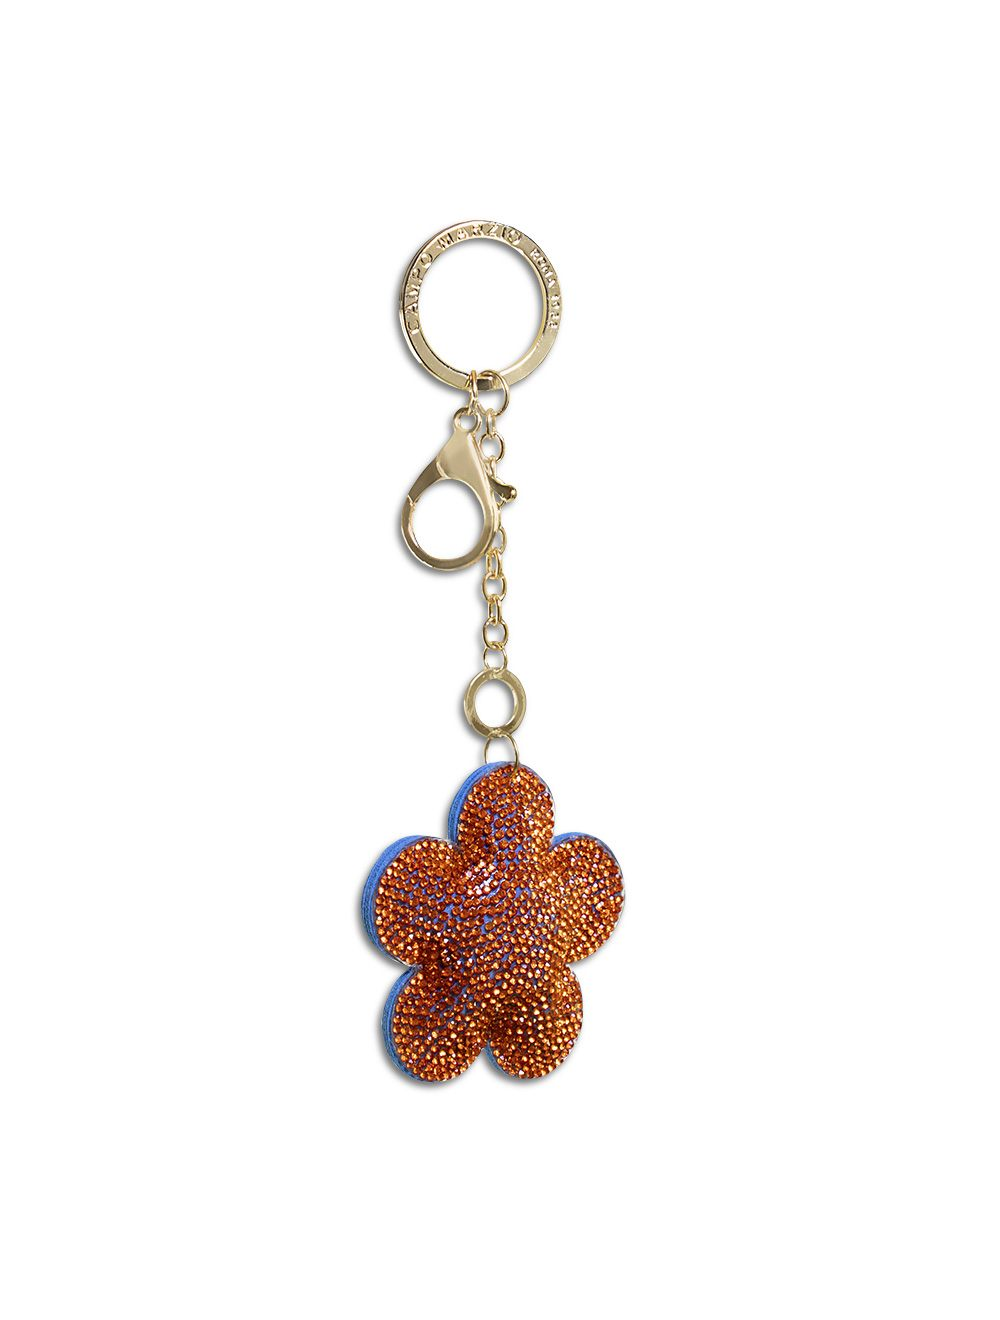 Beziers Flore Key Chain